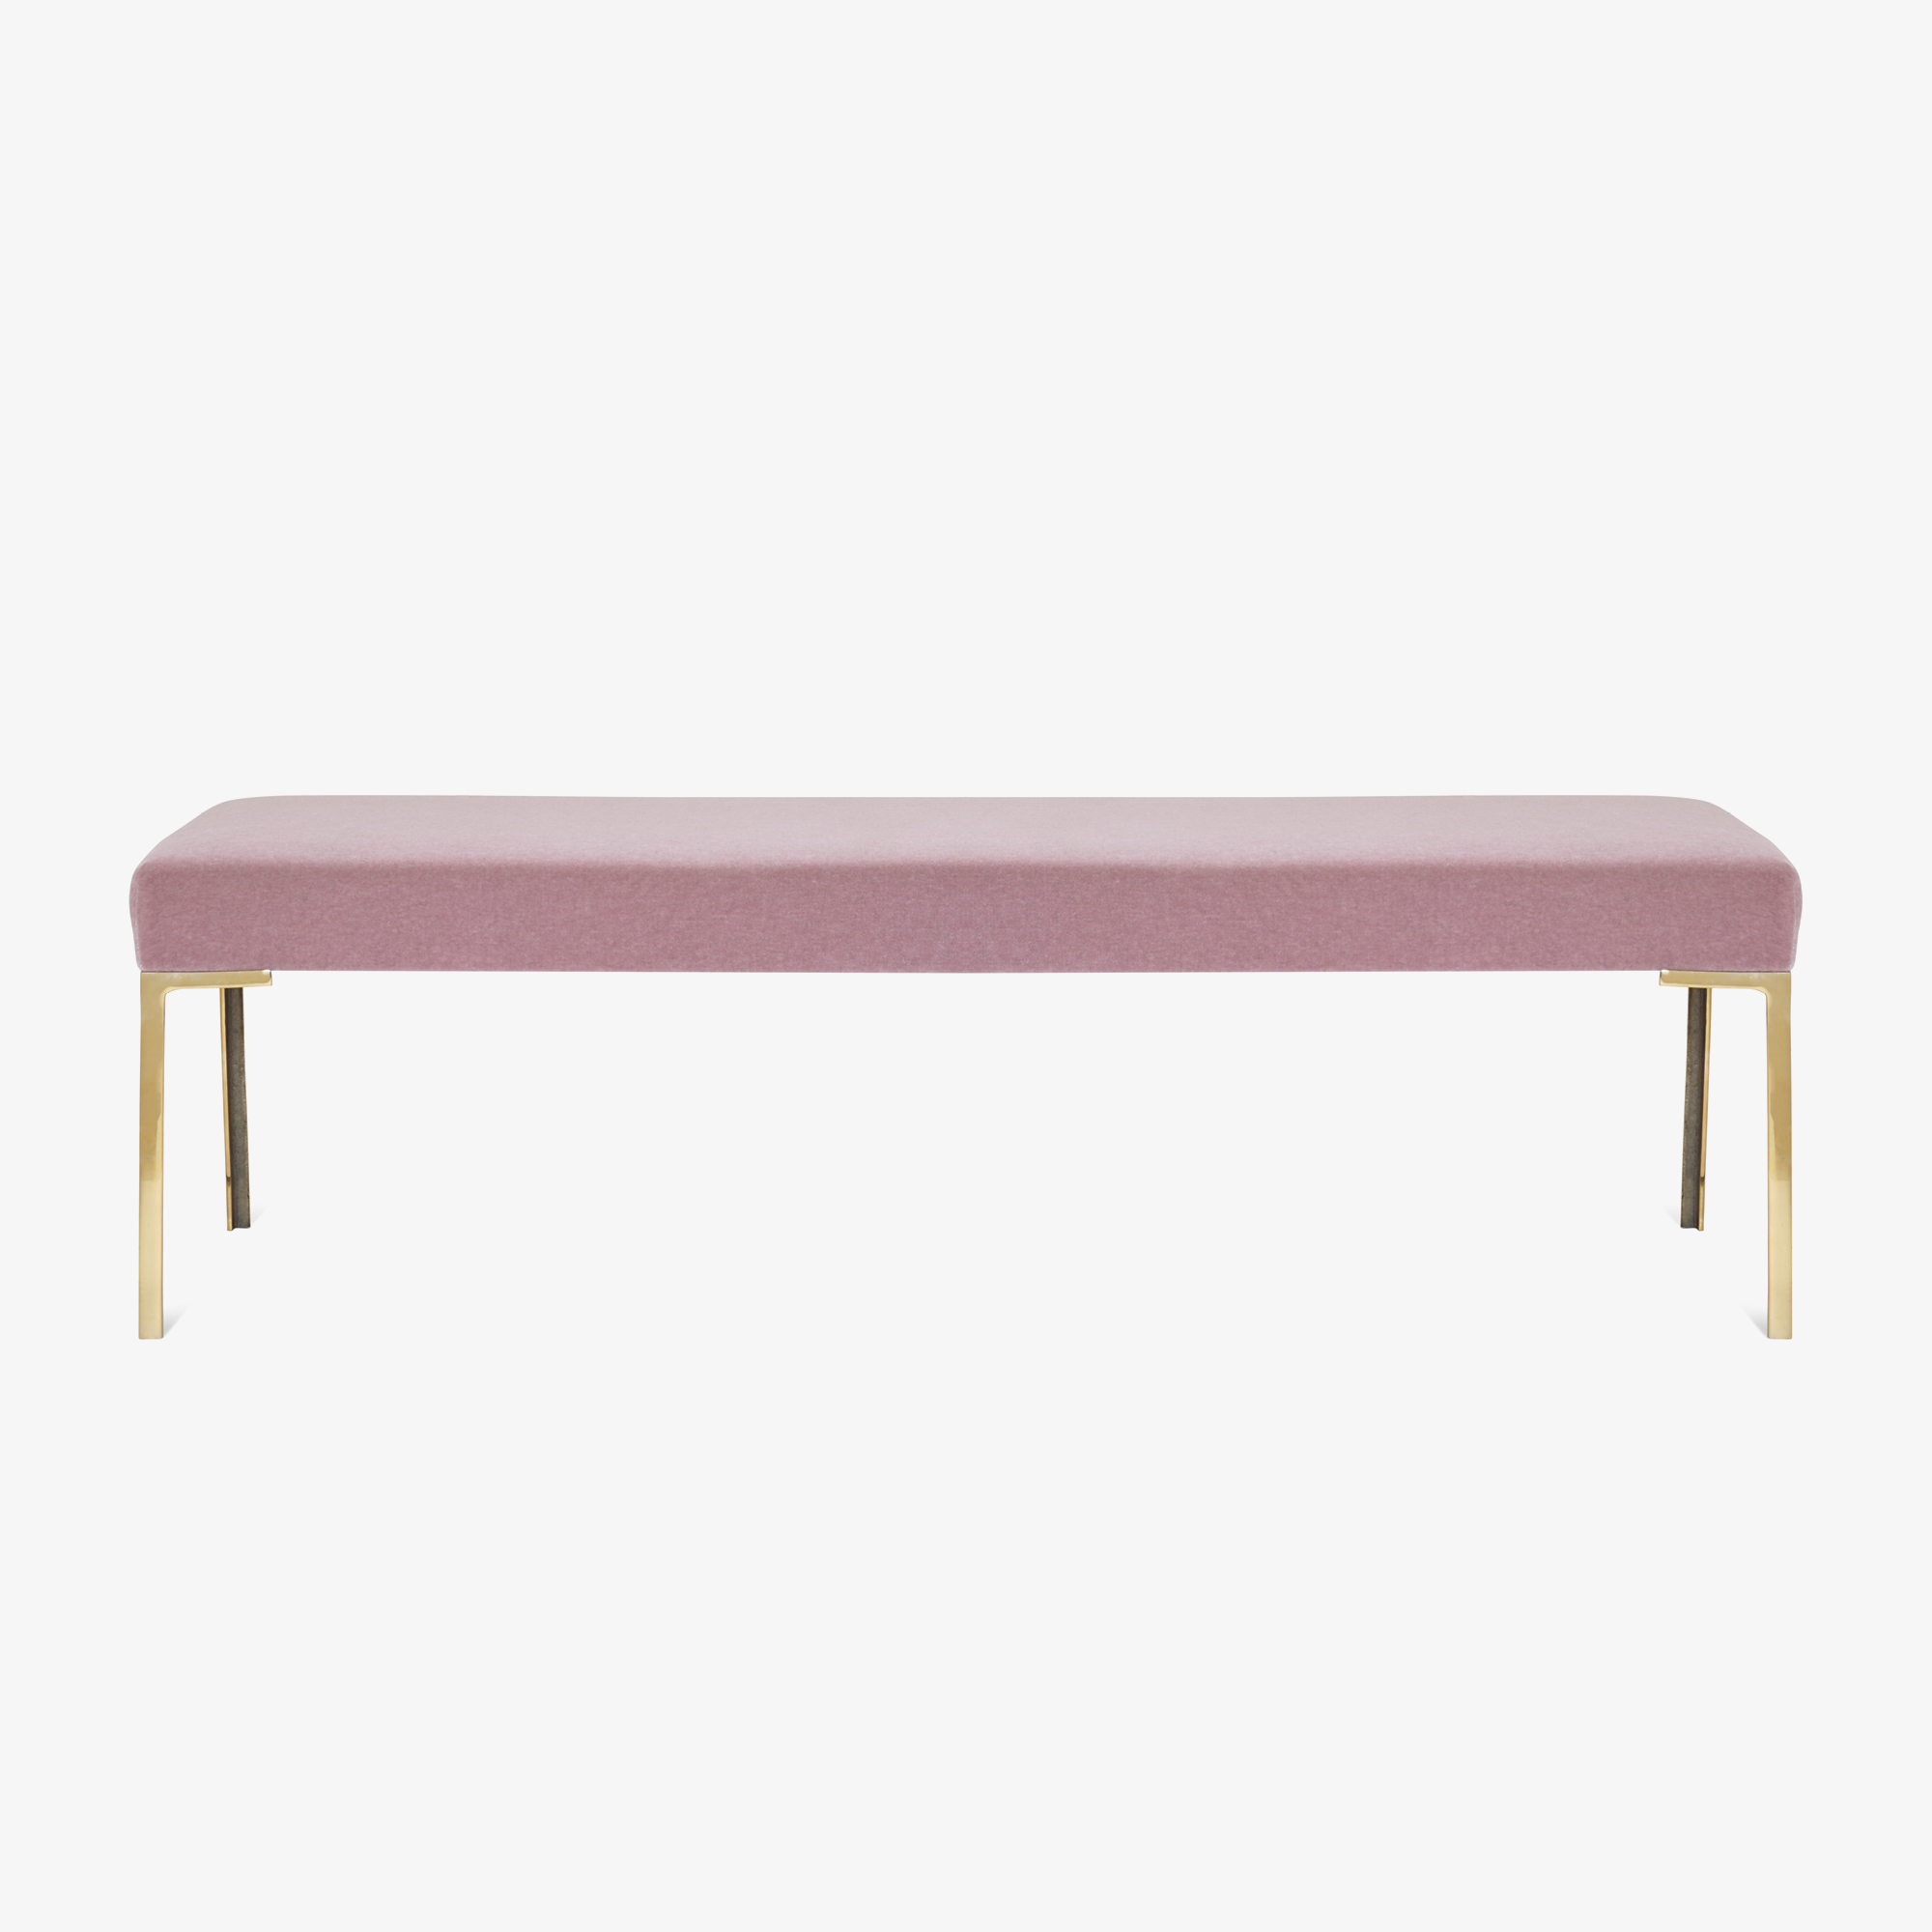 Astor 60%22 Brass Bench in Mohair.png